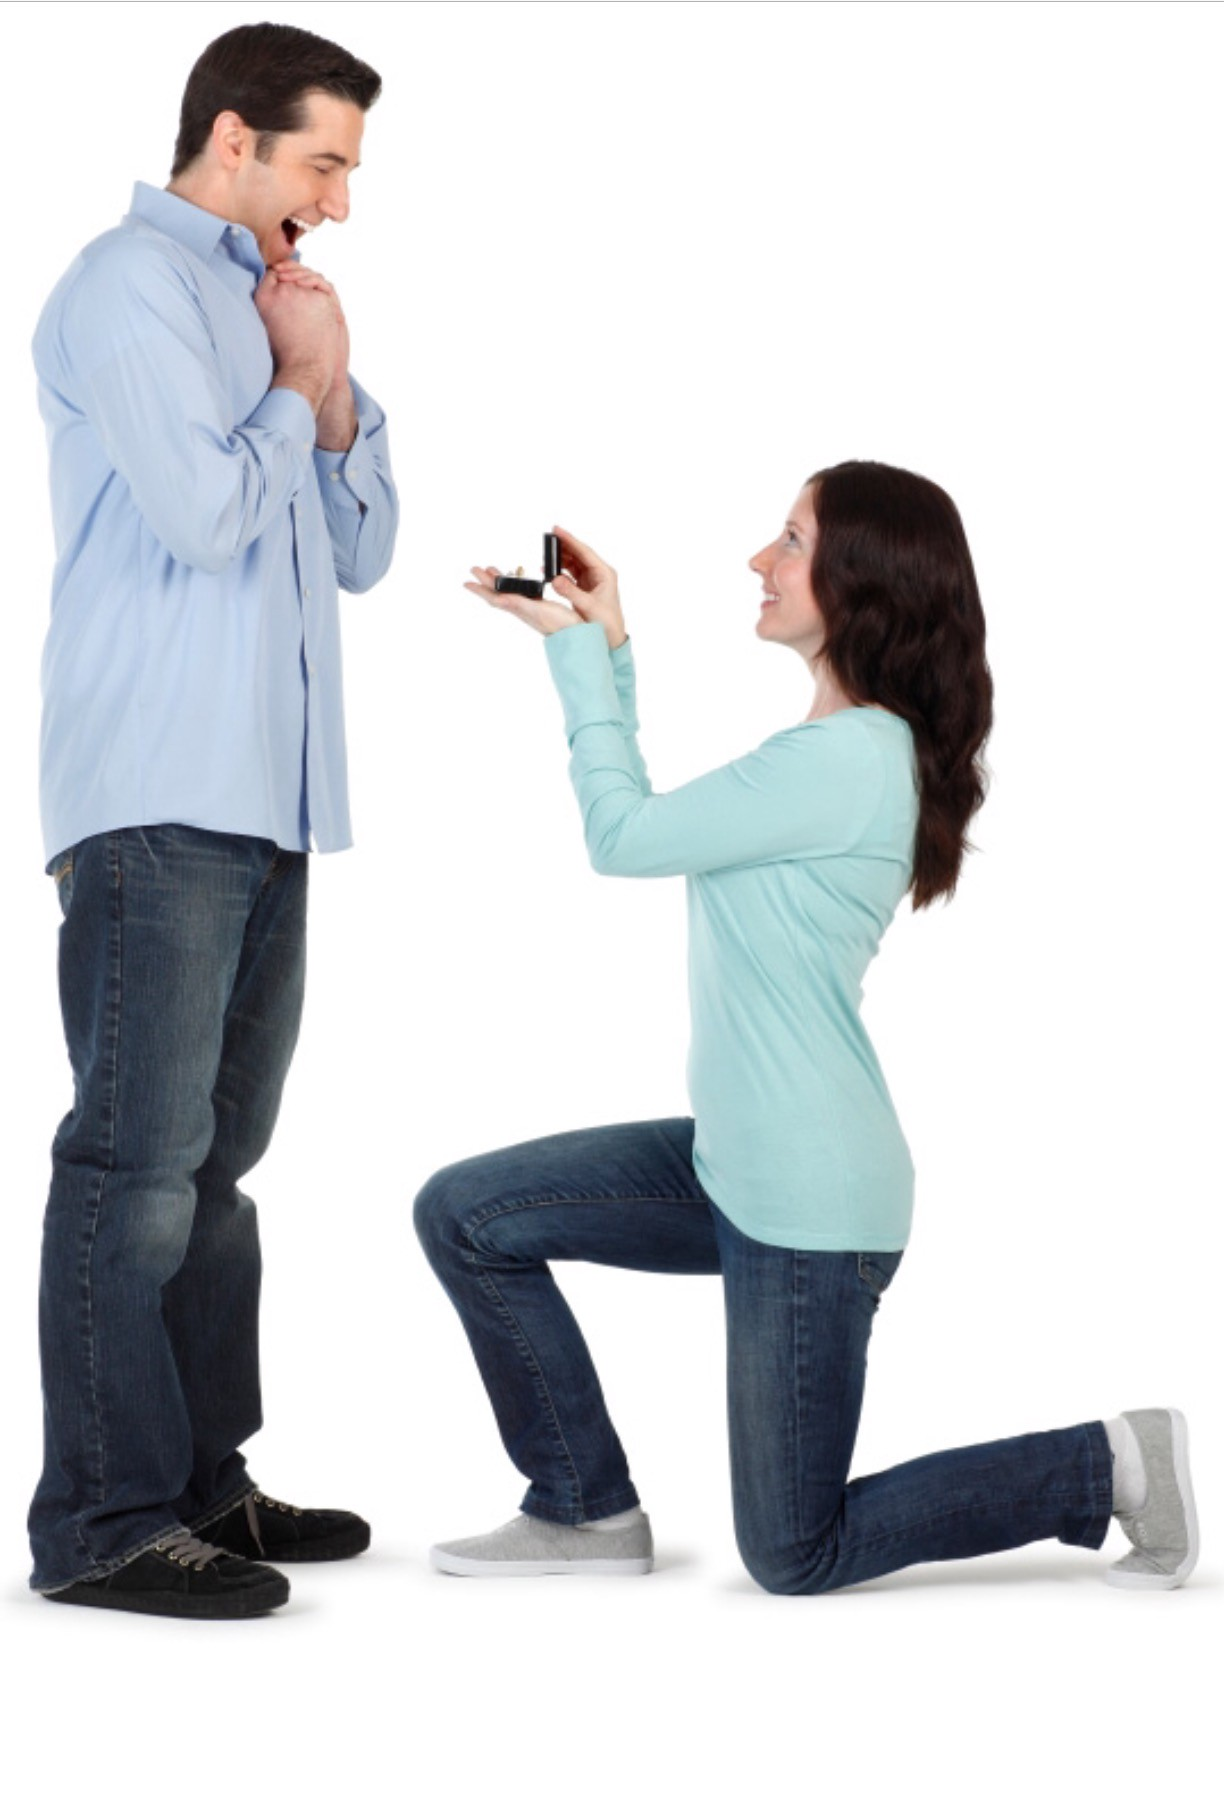 WOMEN, REASONS WHY YOU SHOULD NEVER PROPOSE TO MEN!